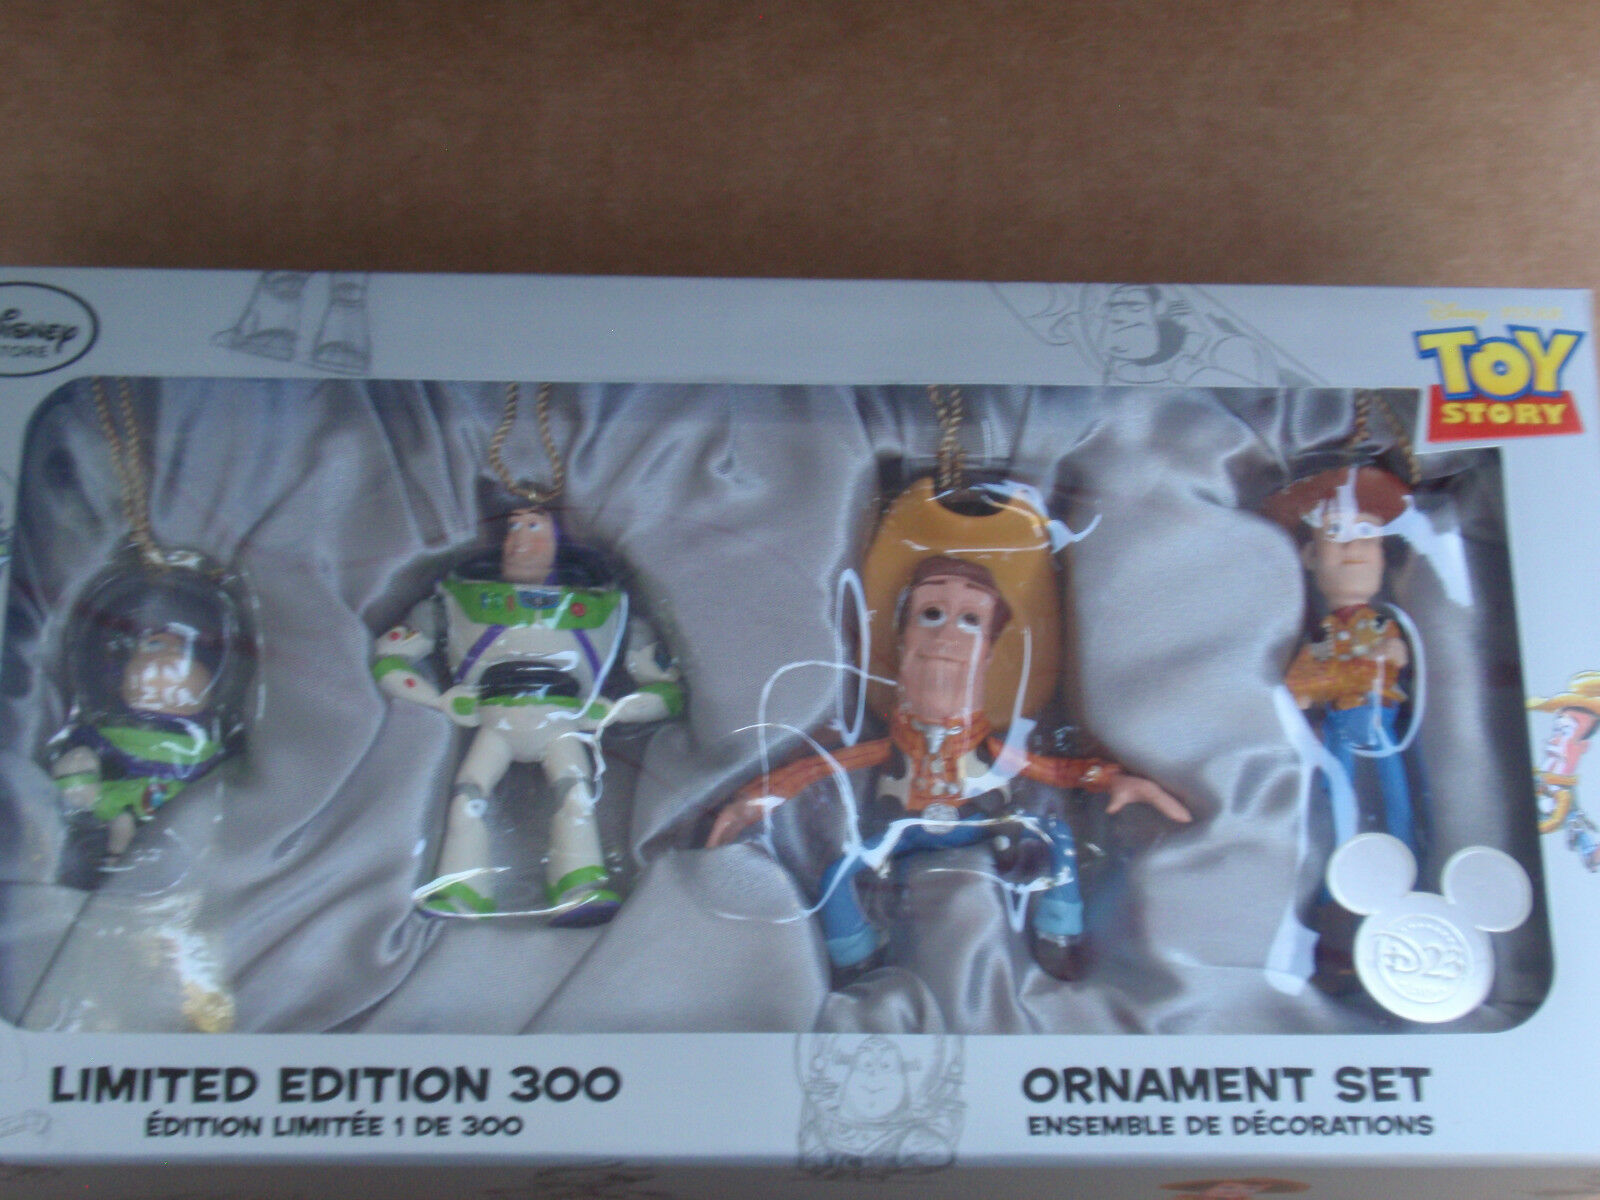 2015 D23 TOY STORY SET Limited Edition of 300